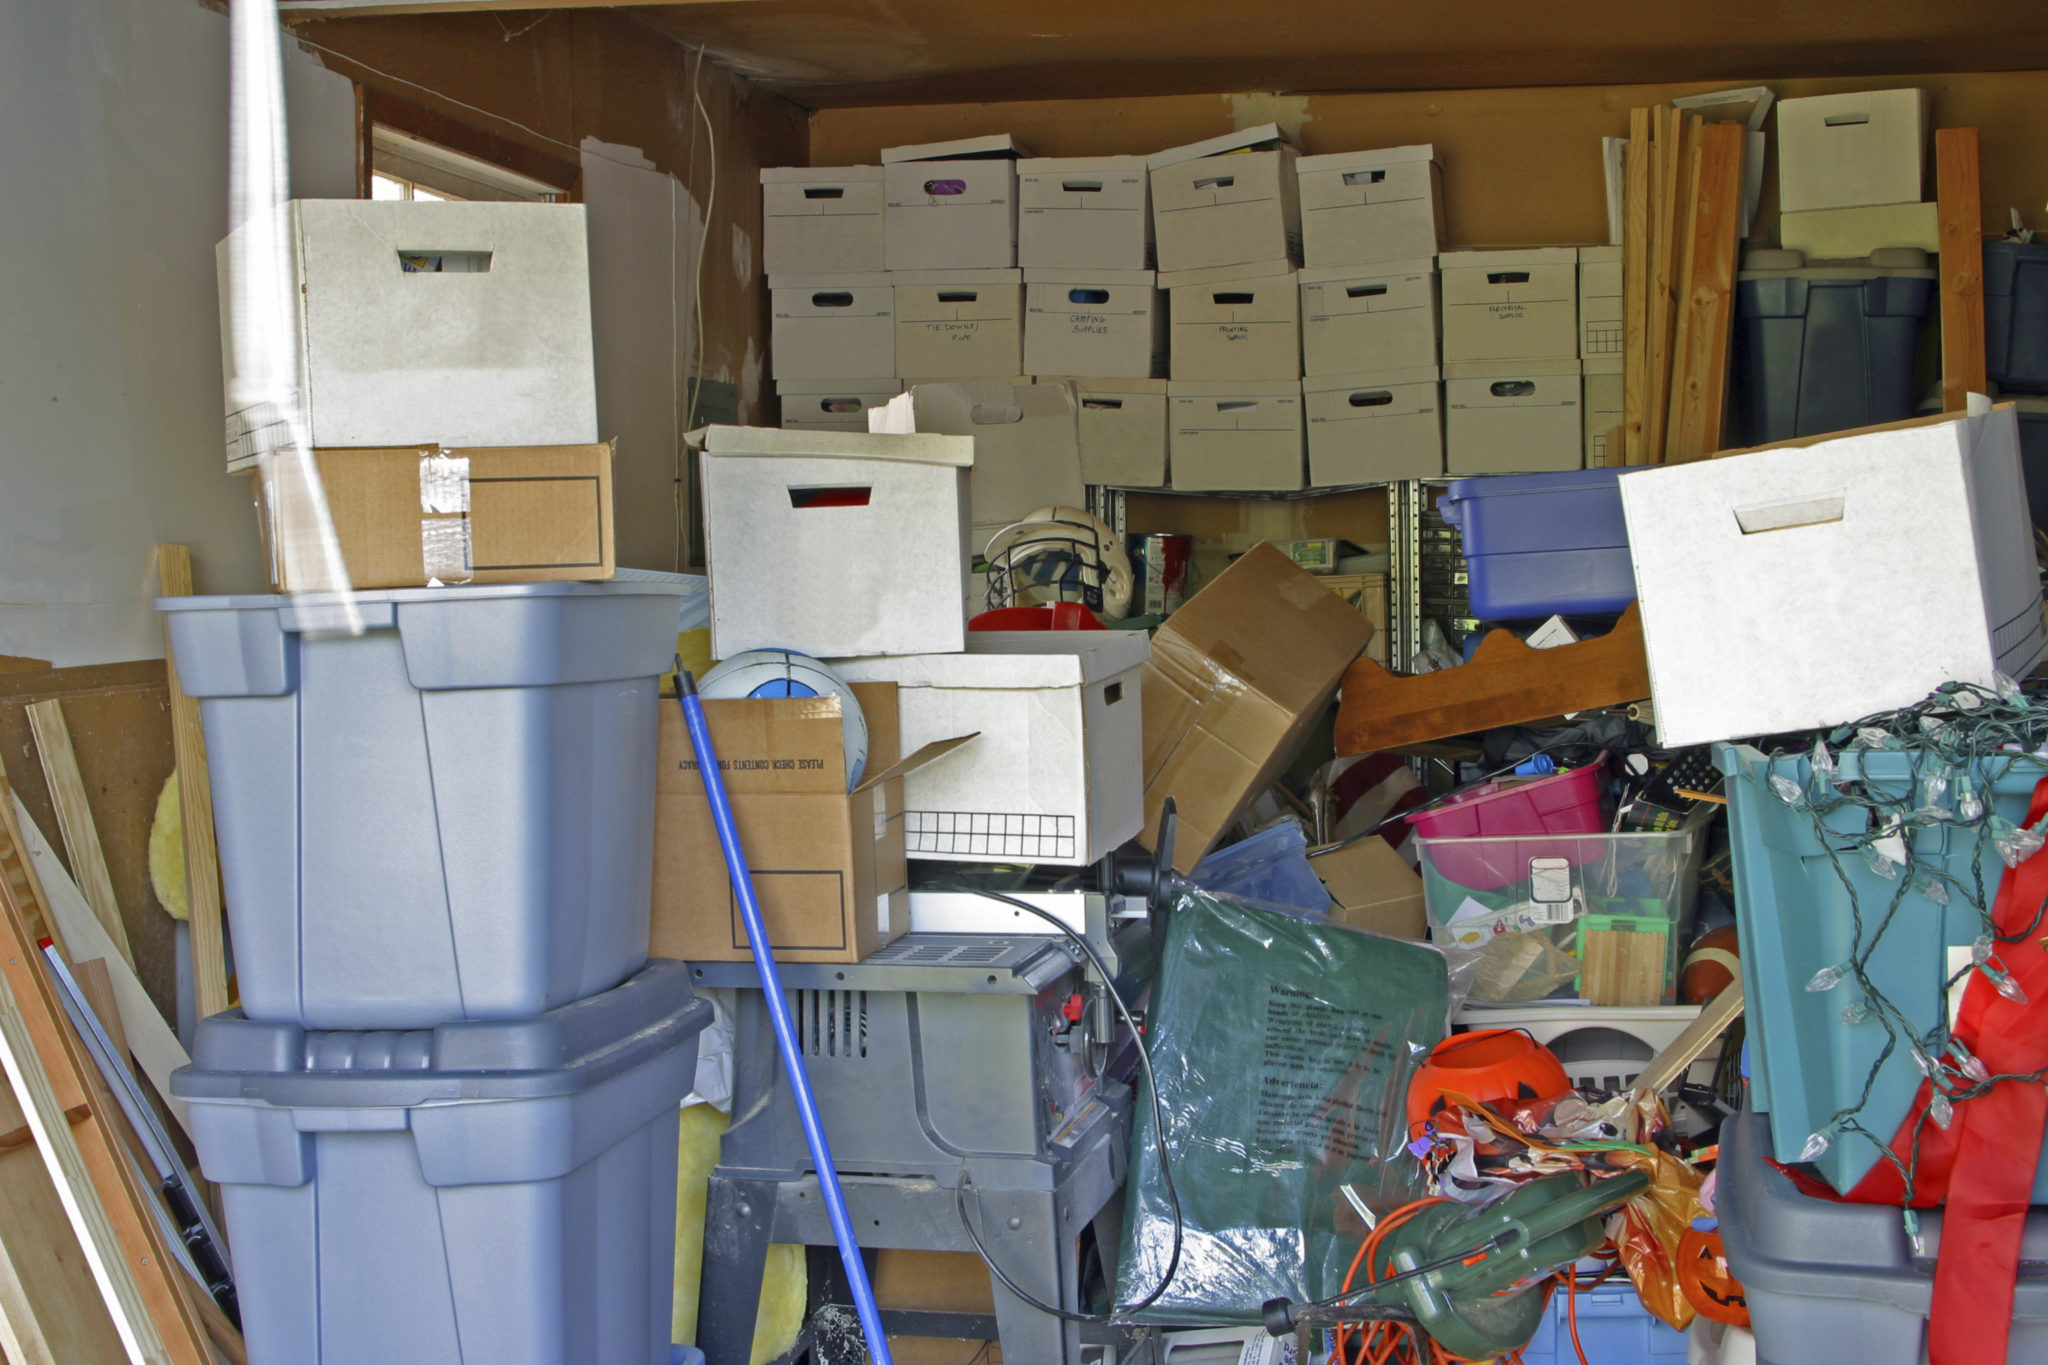 3 Simple Tips for Getting Organized